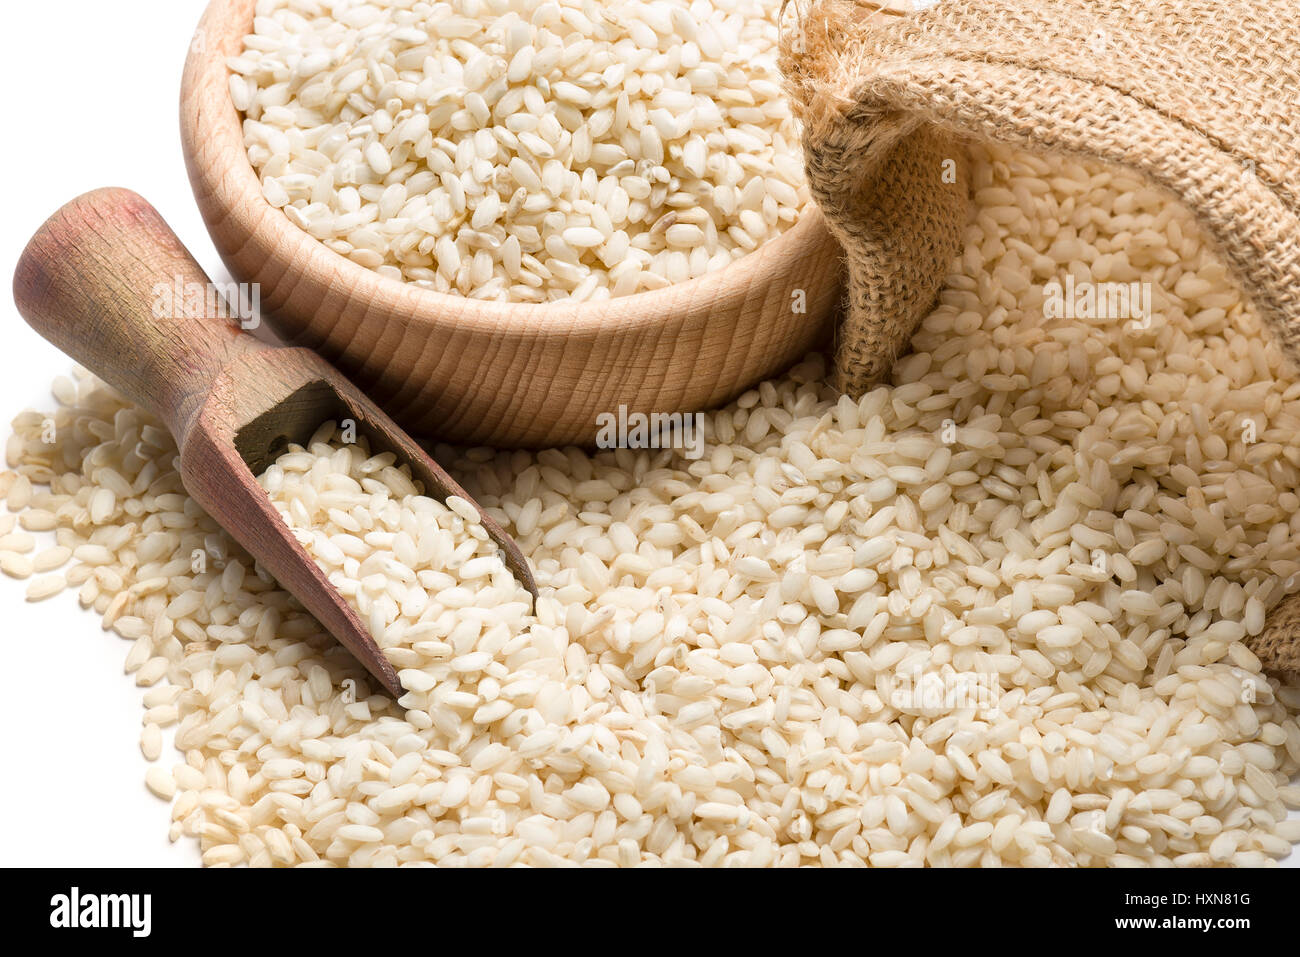 white rice in wooden bowl and juta bag closeup, on white background - Stock Image